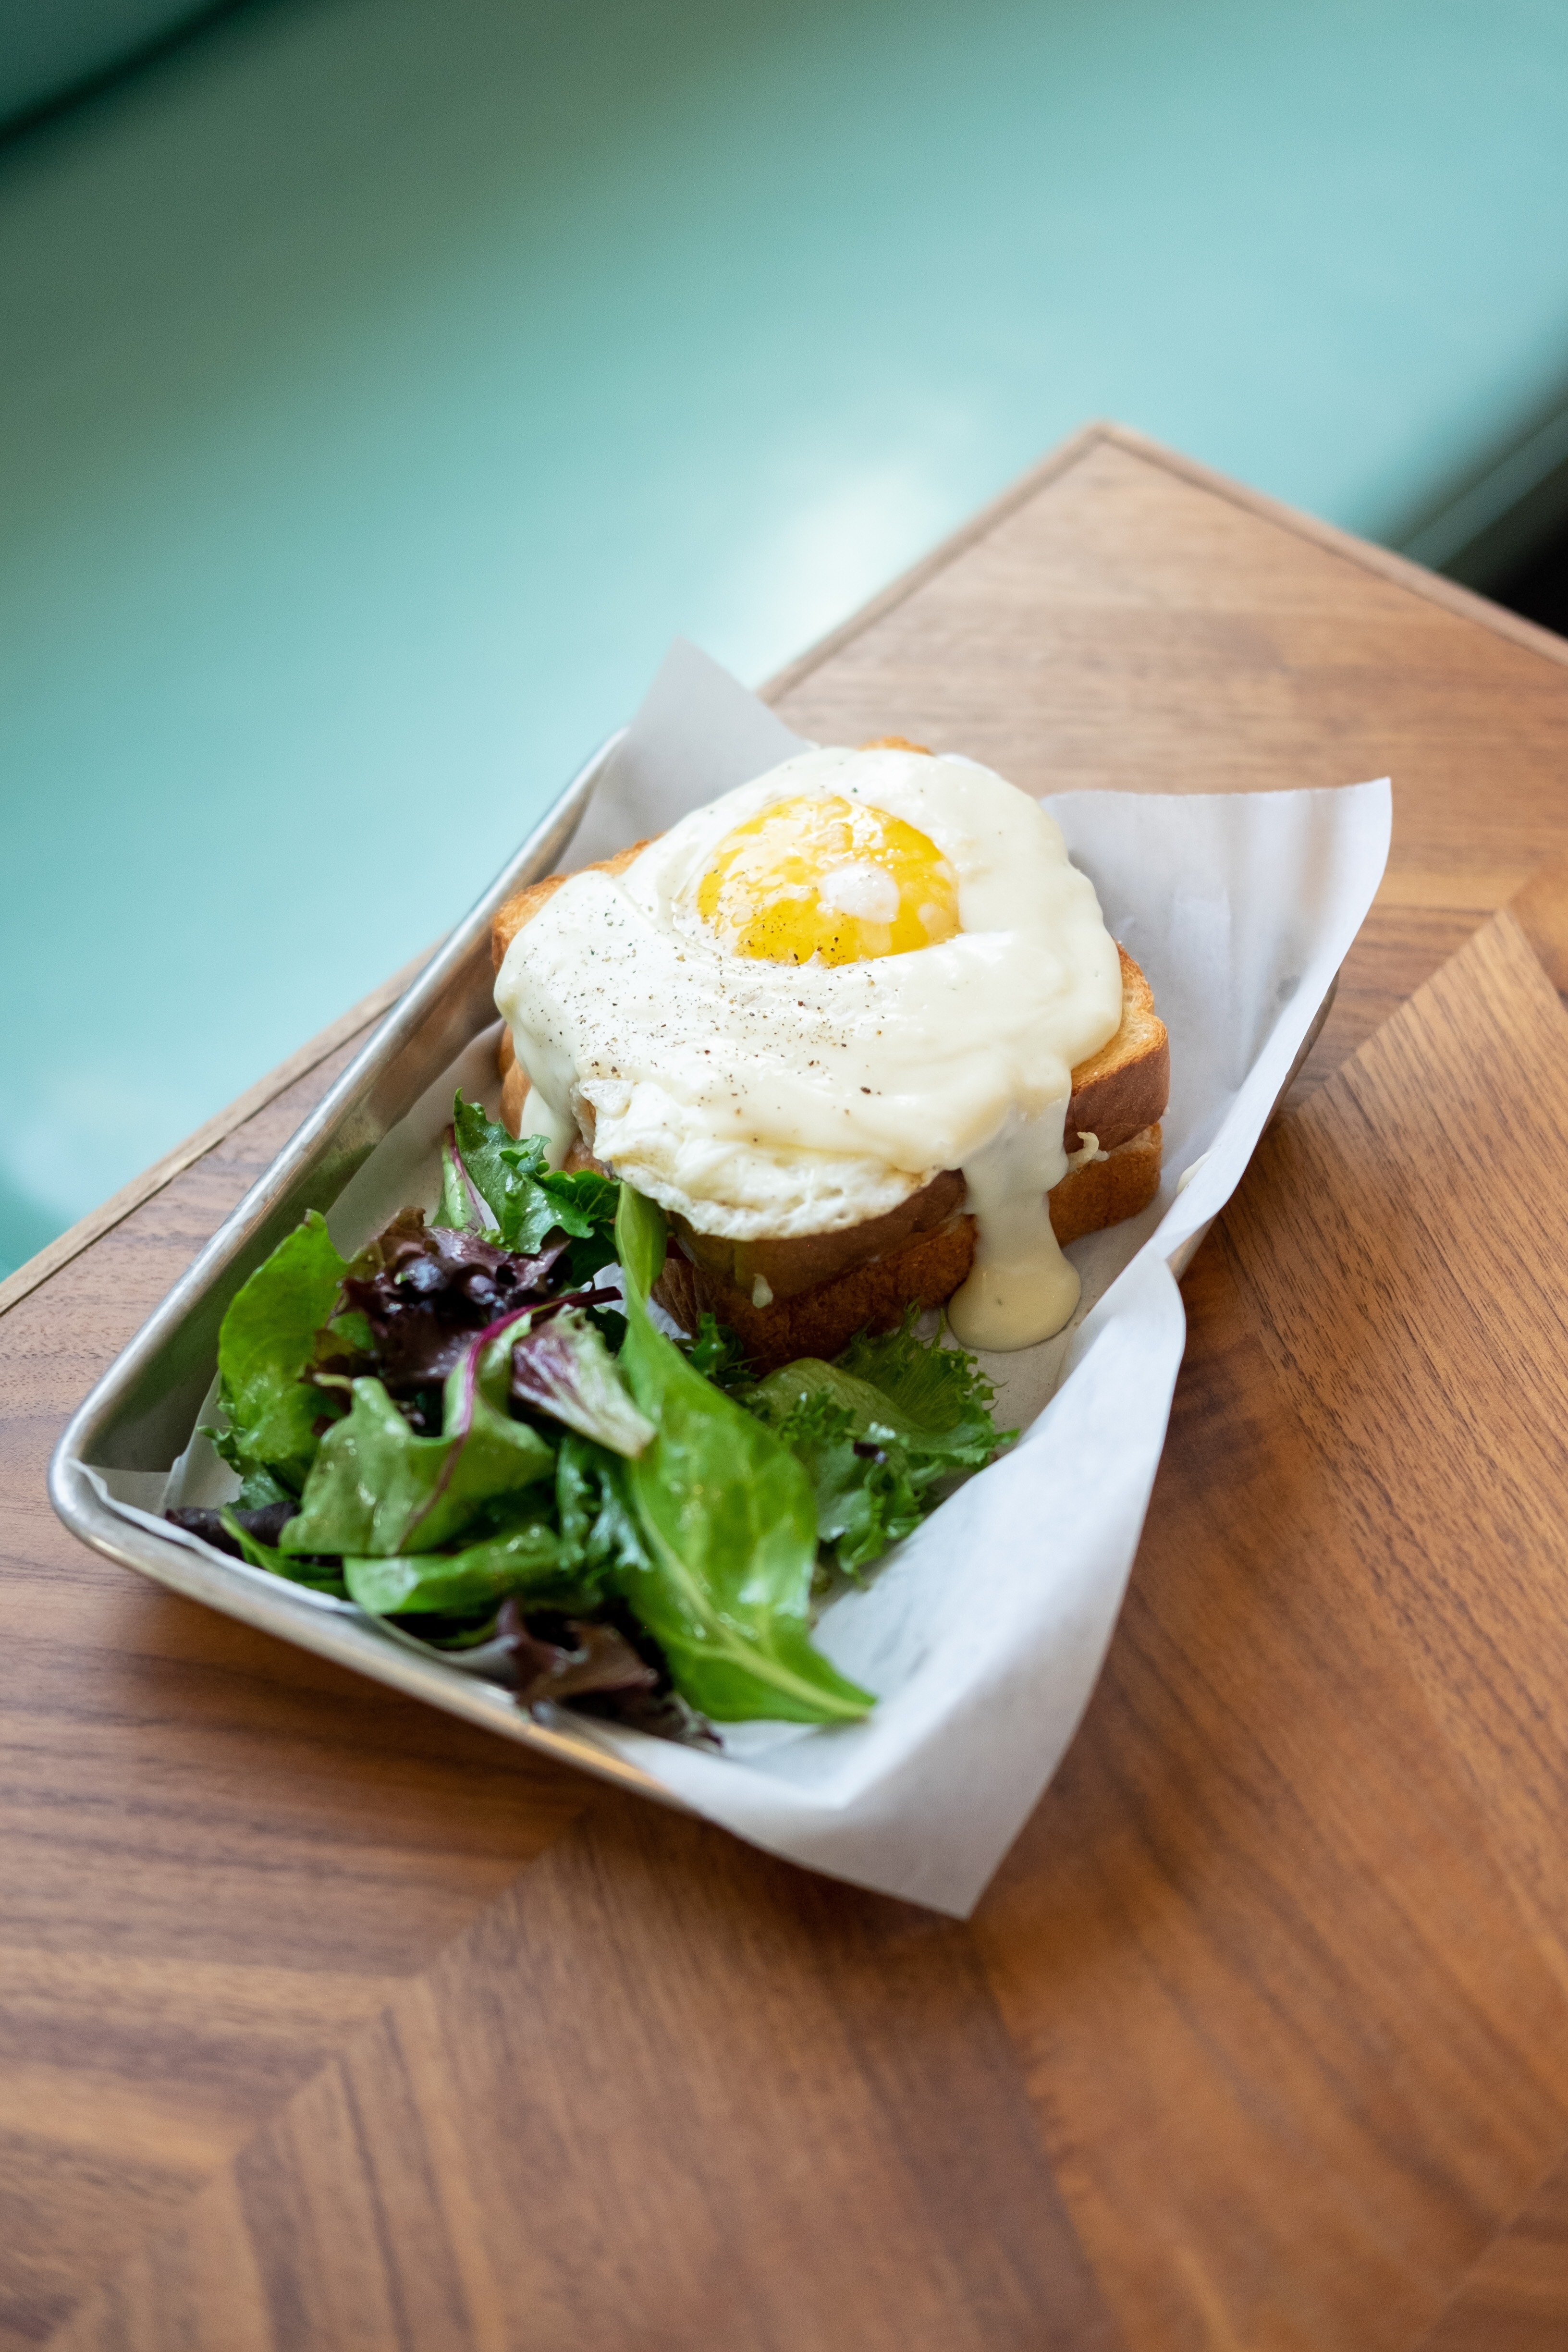 The croque-madame at the Bistro at Lark & Owl Booksellers